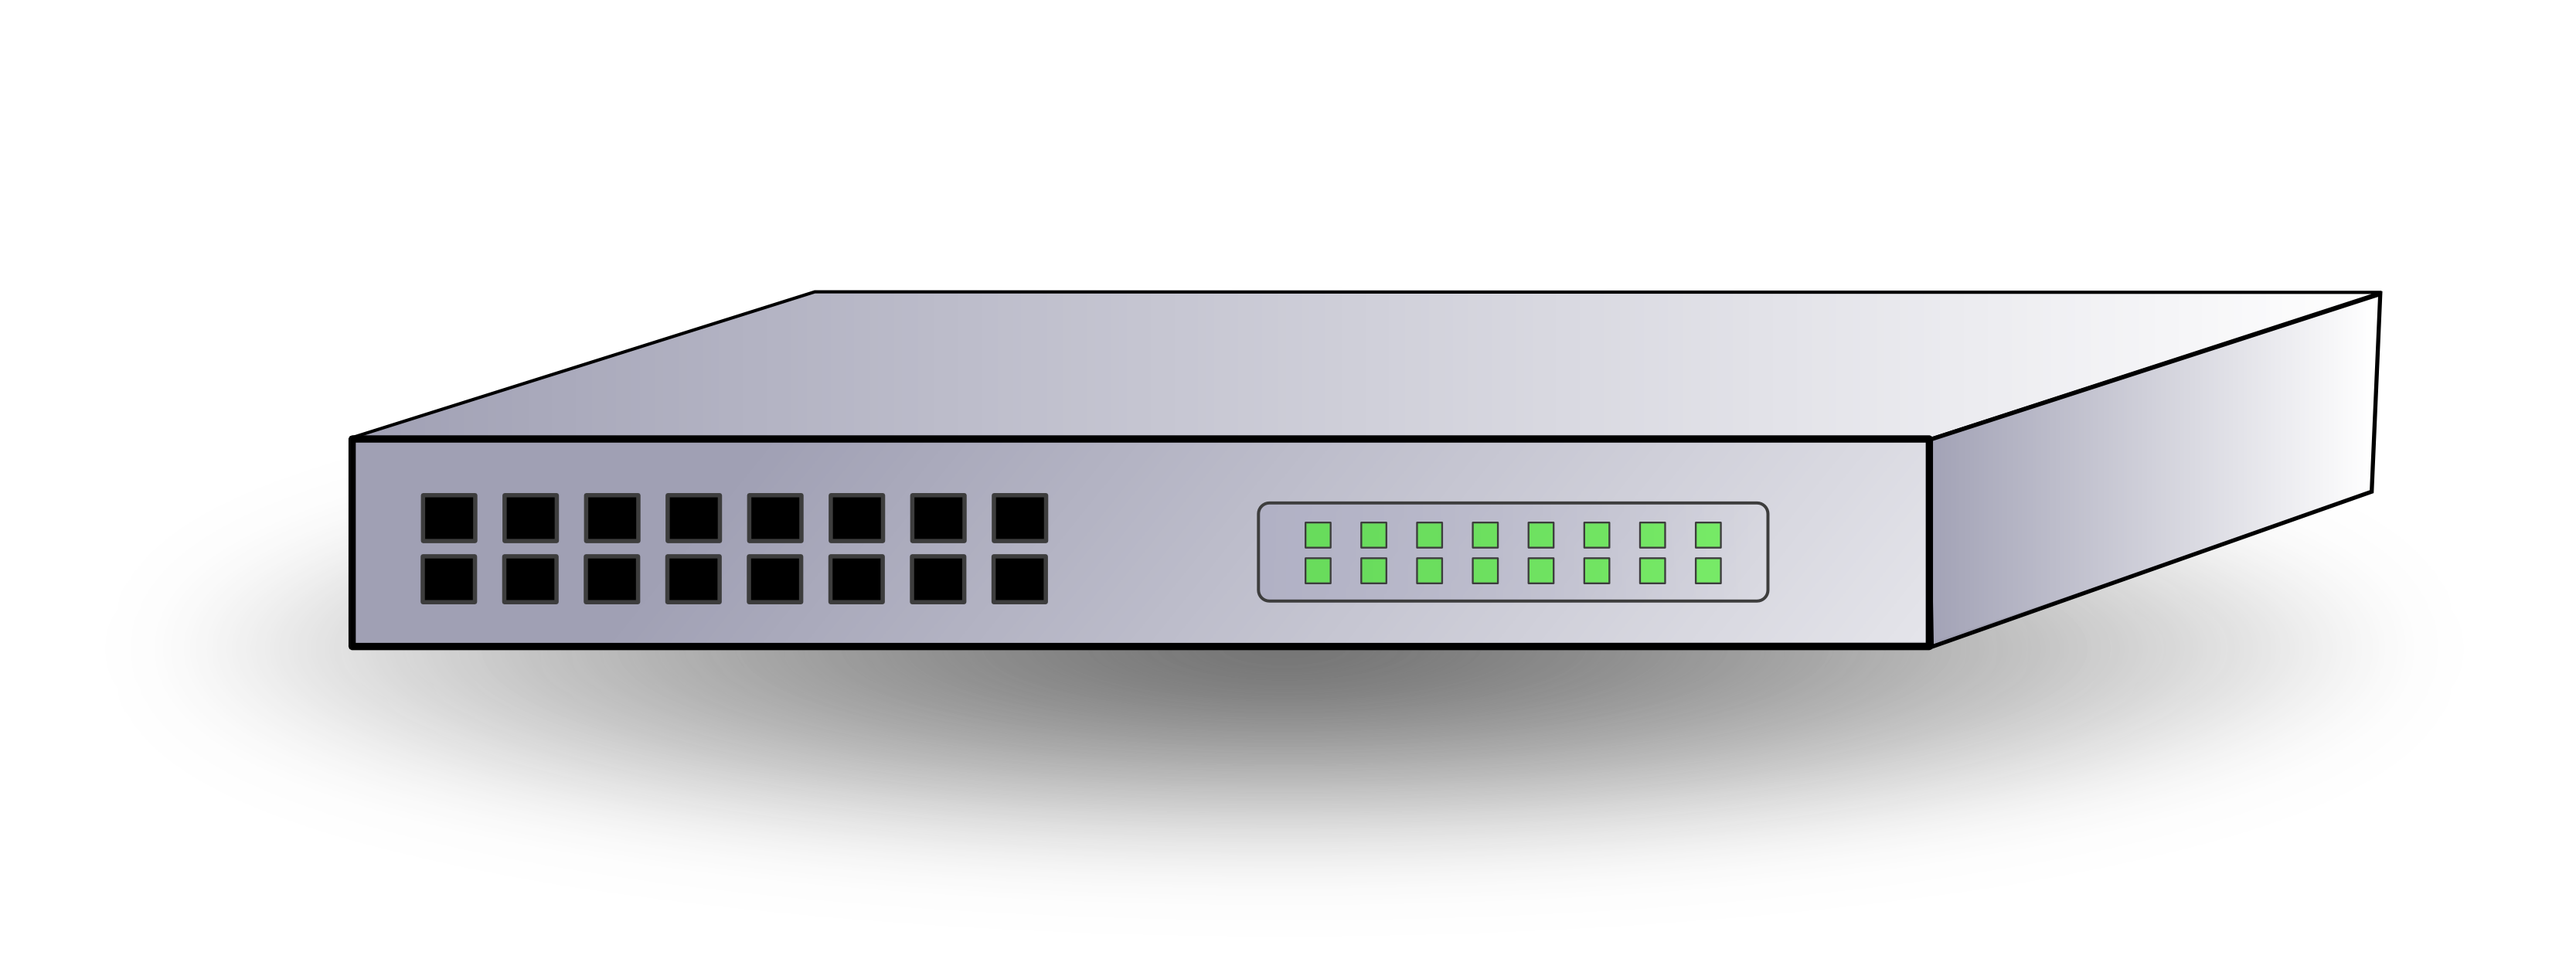 Network Switch Clipart.